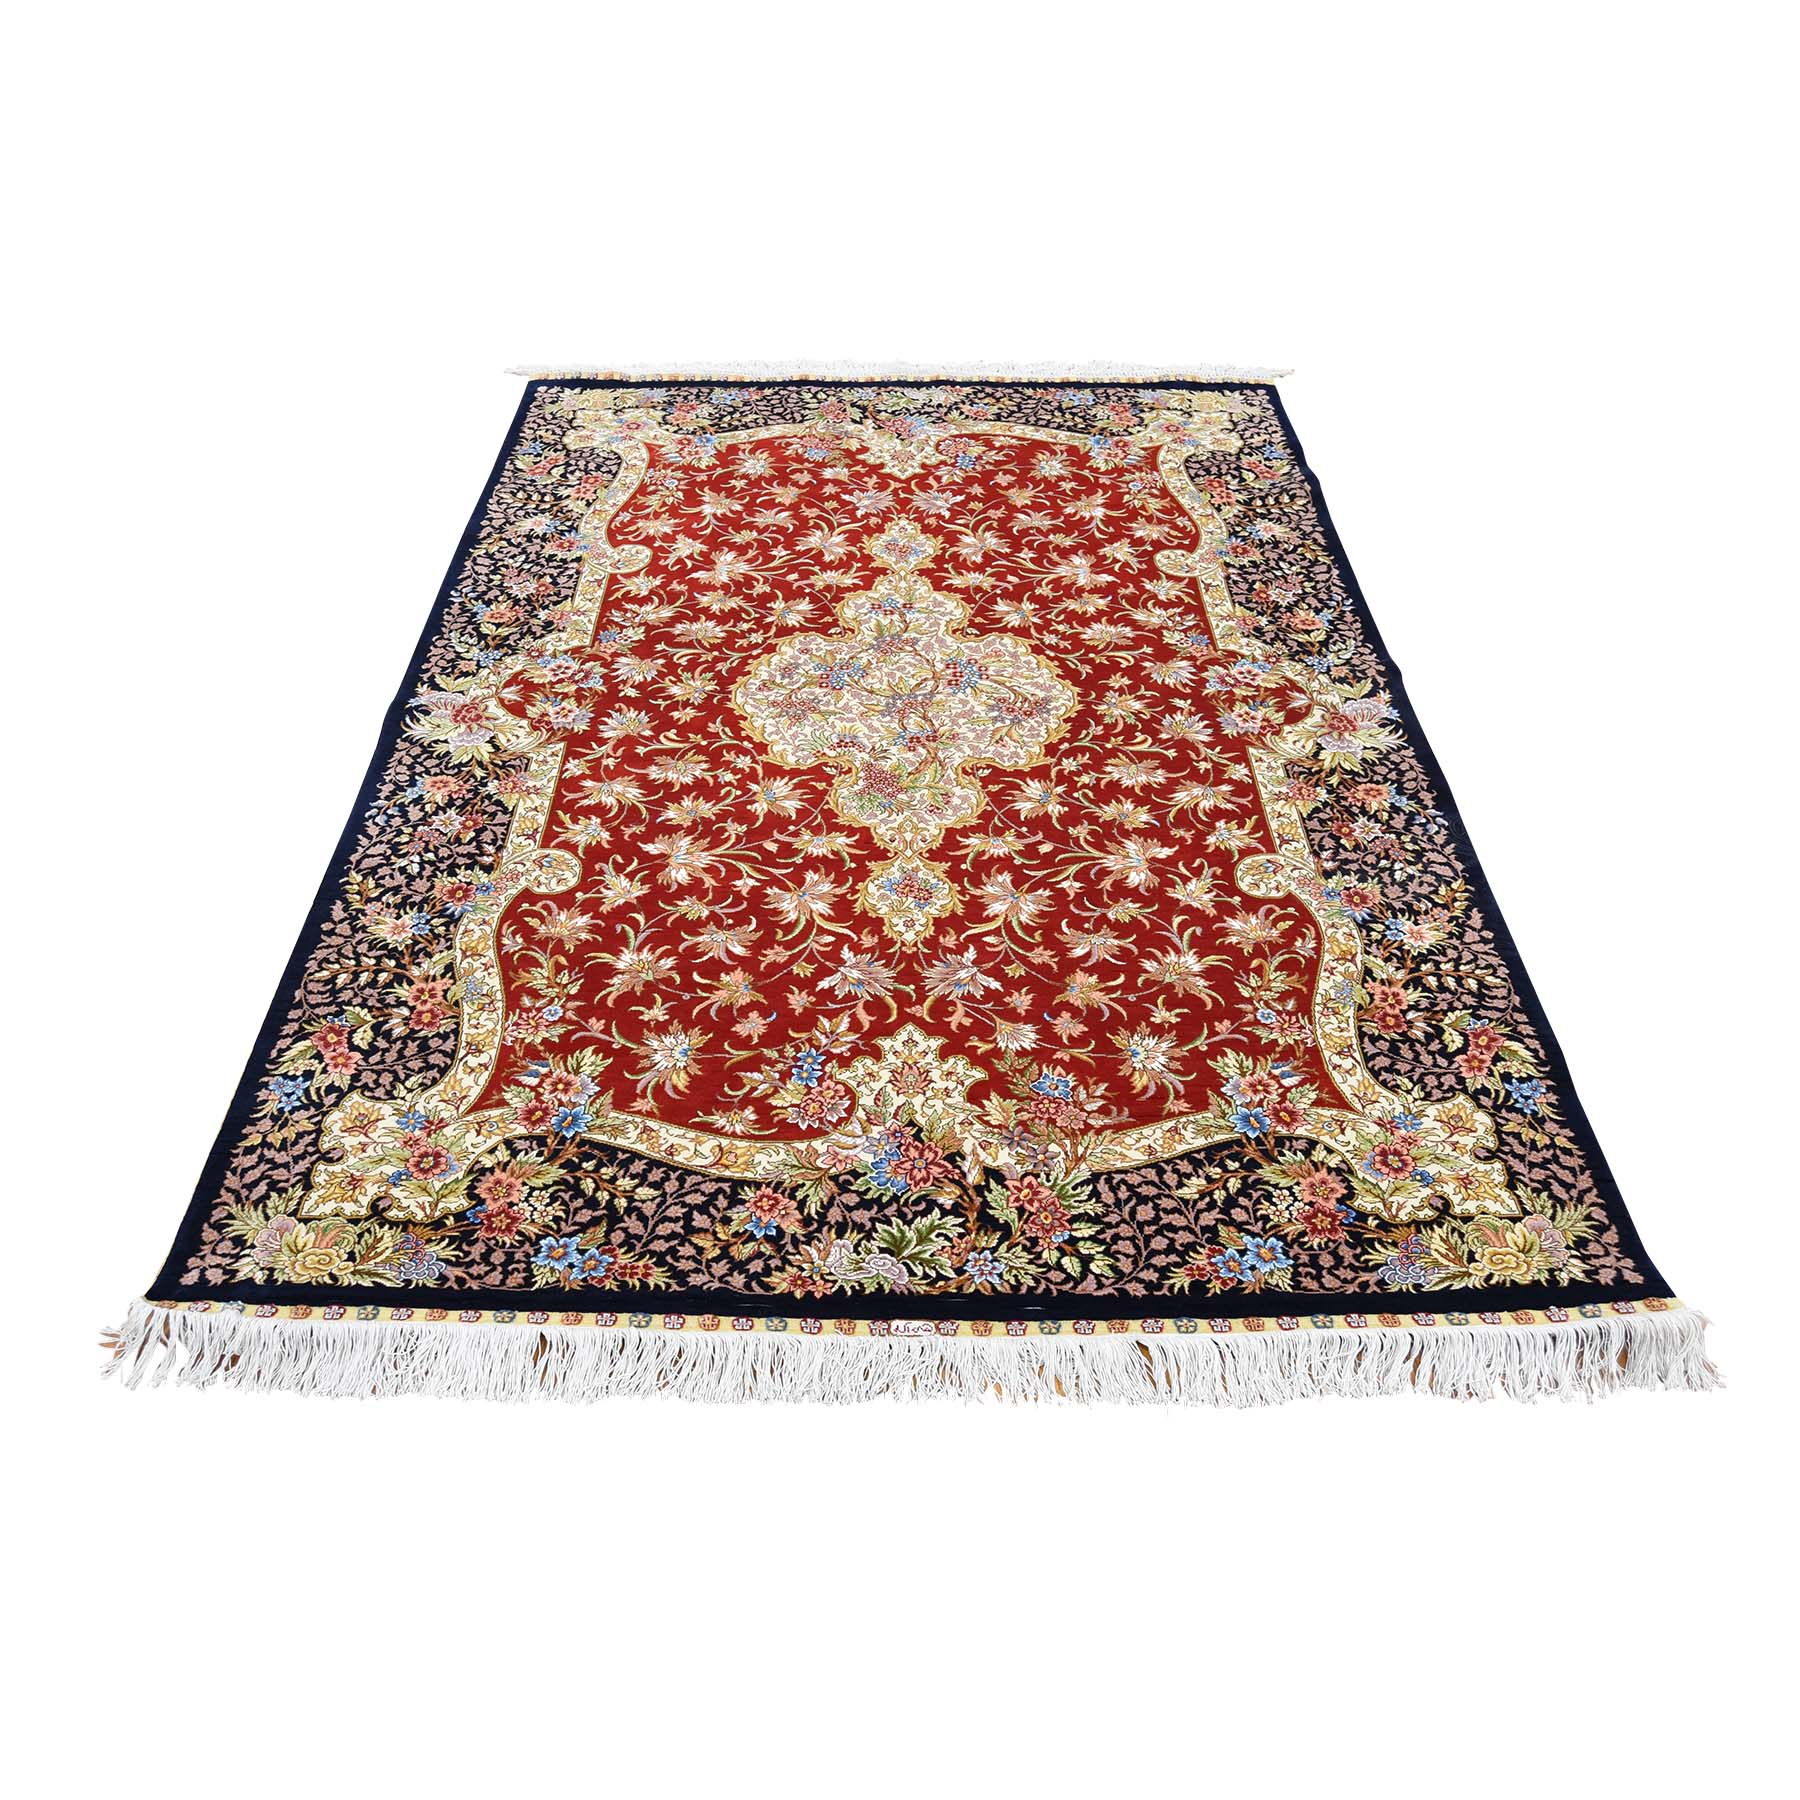 Pirniakan Collection Hand Knotted Red Rug No: 0180368